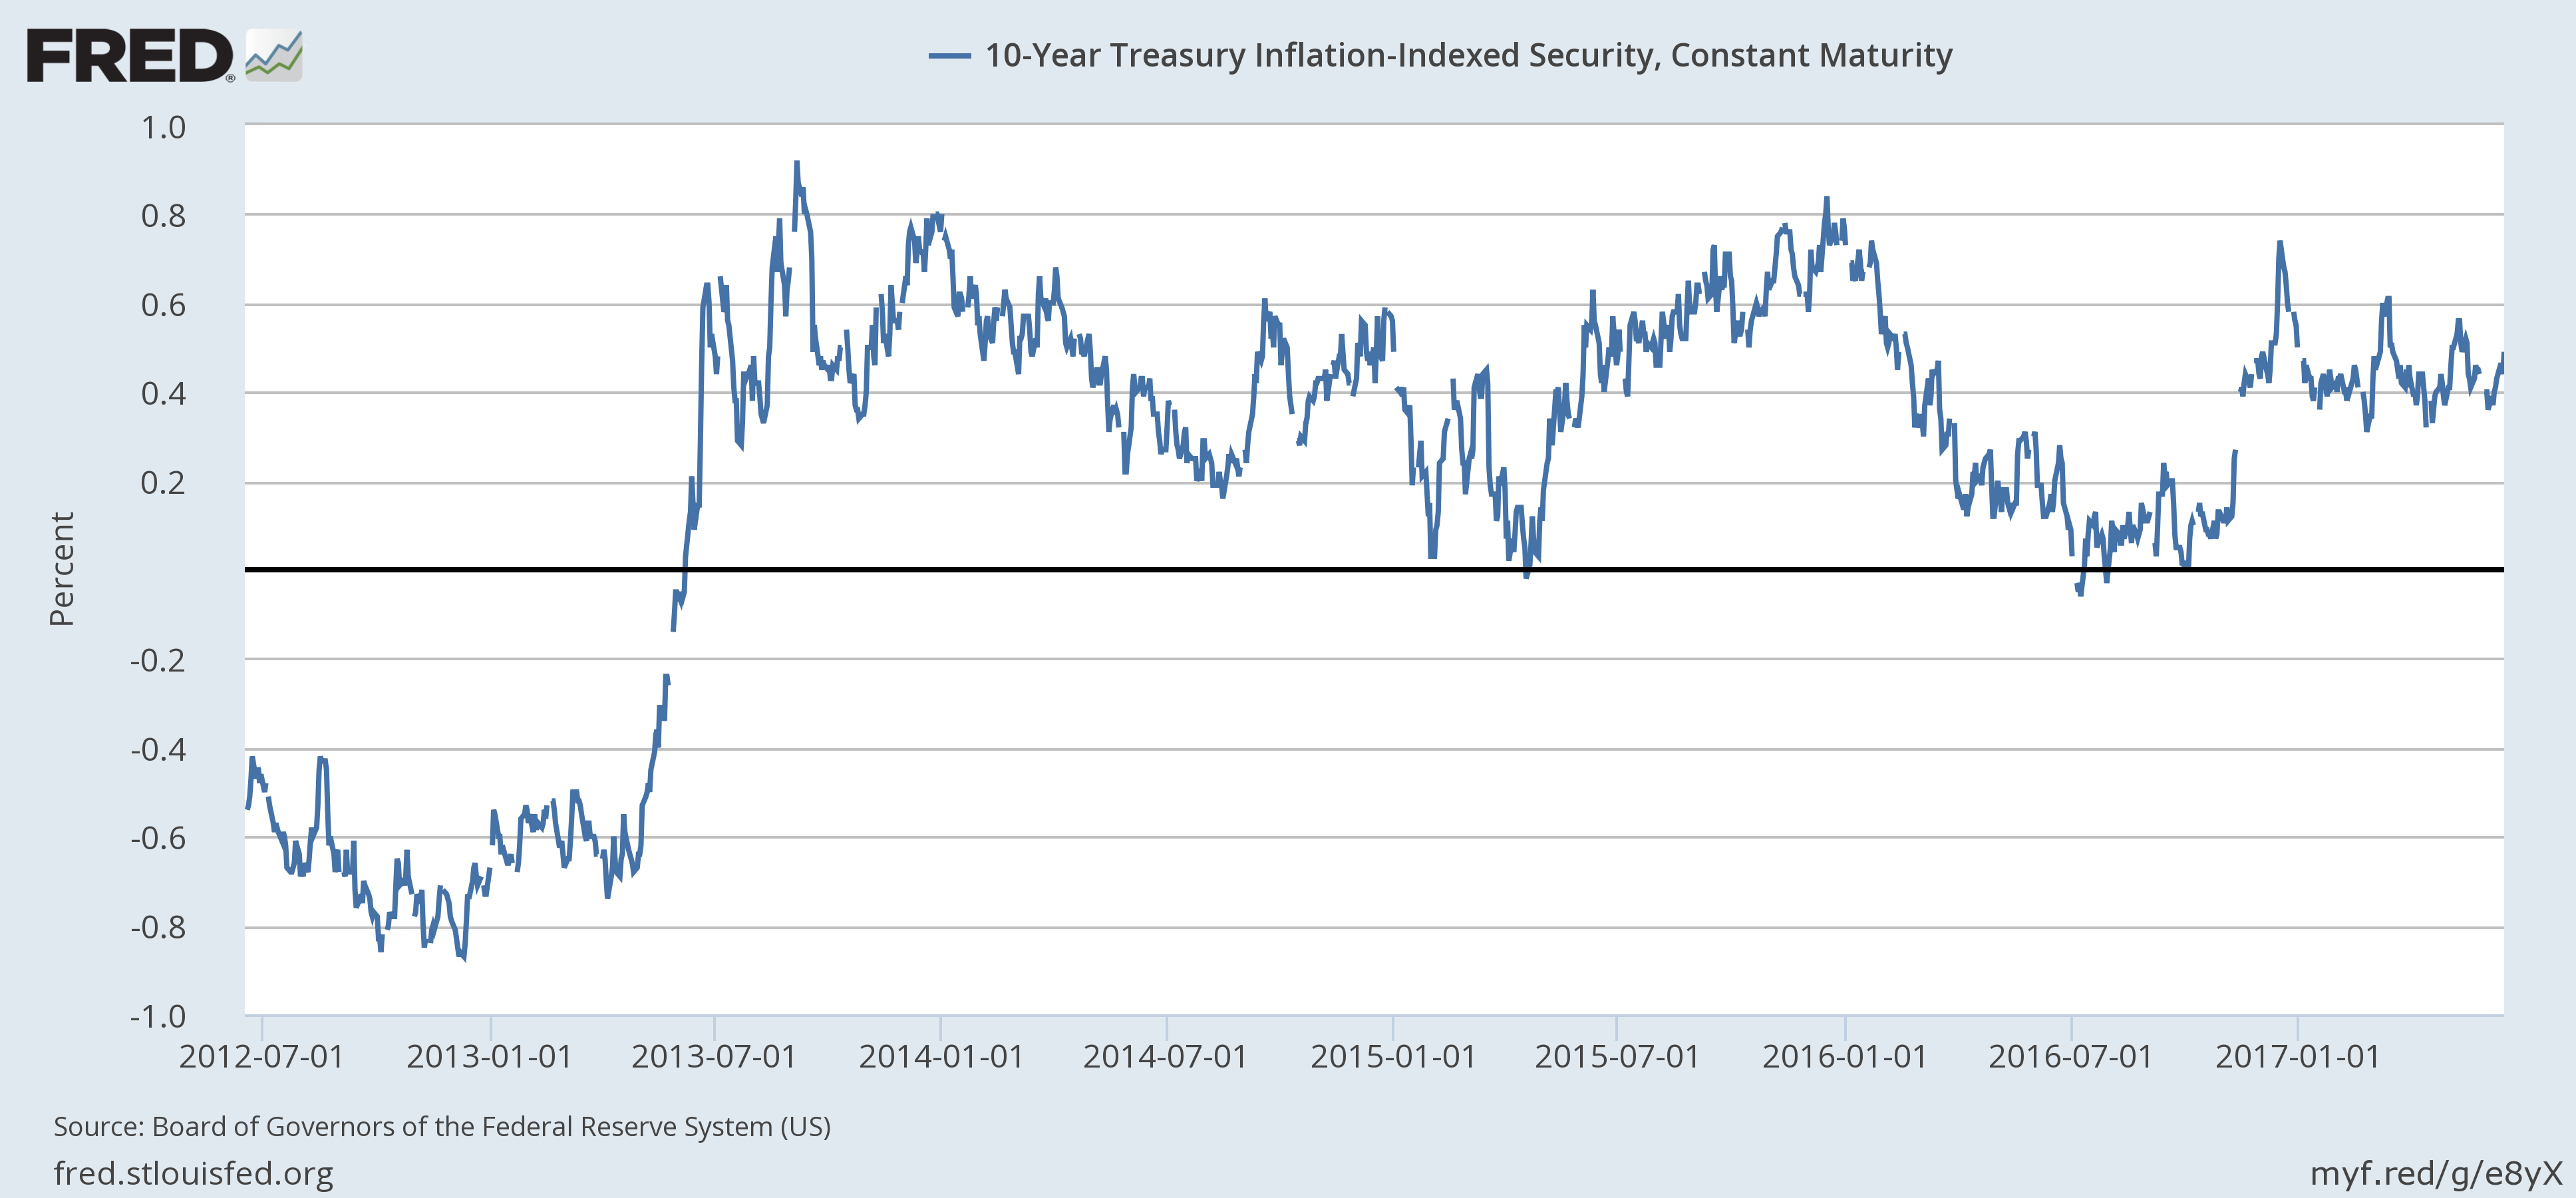 10-Year Treasury Inflation-Indexed Security, Constant Maturiry, July 2012 - June 2017